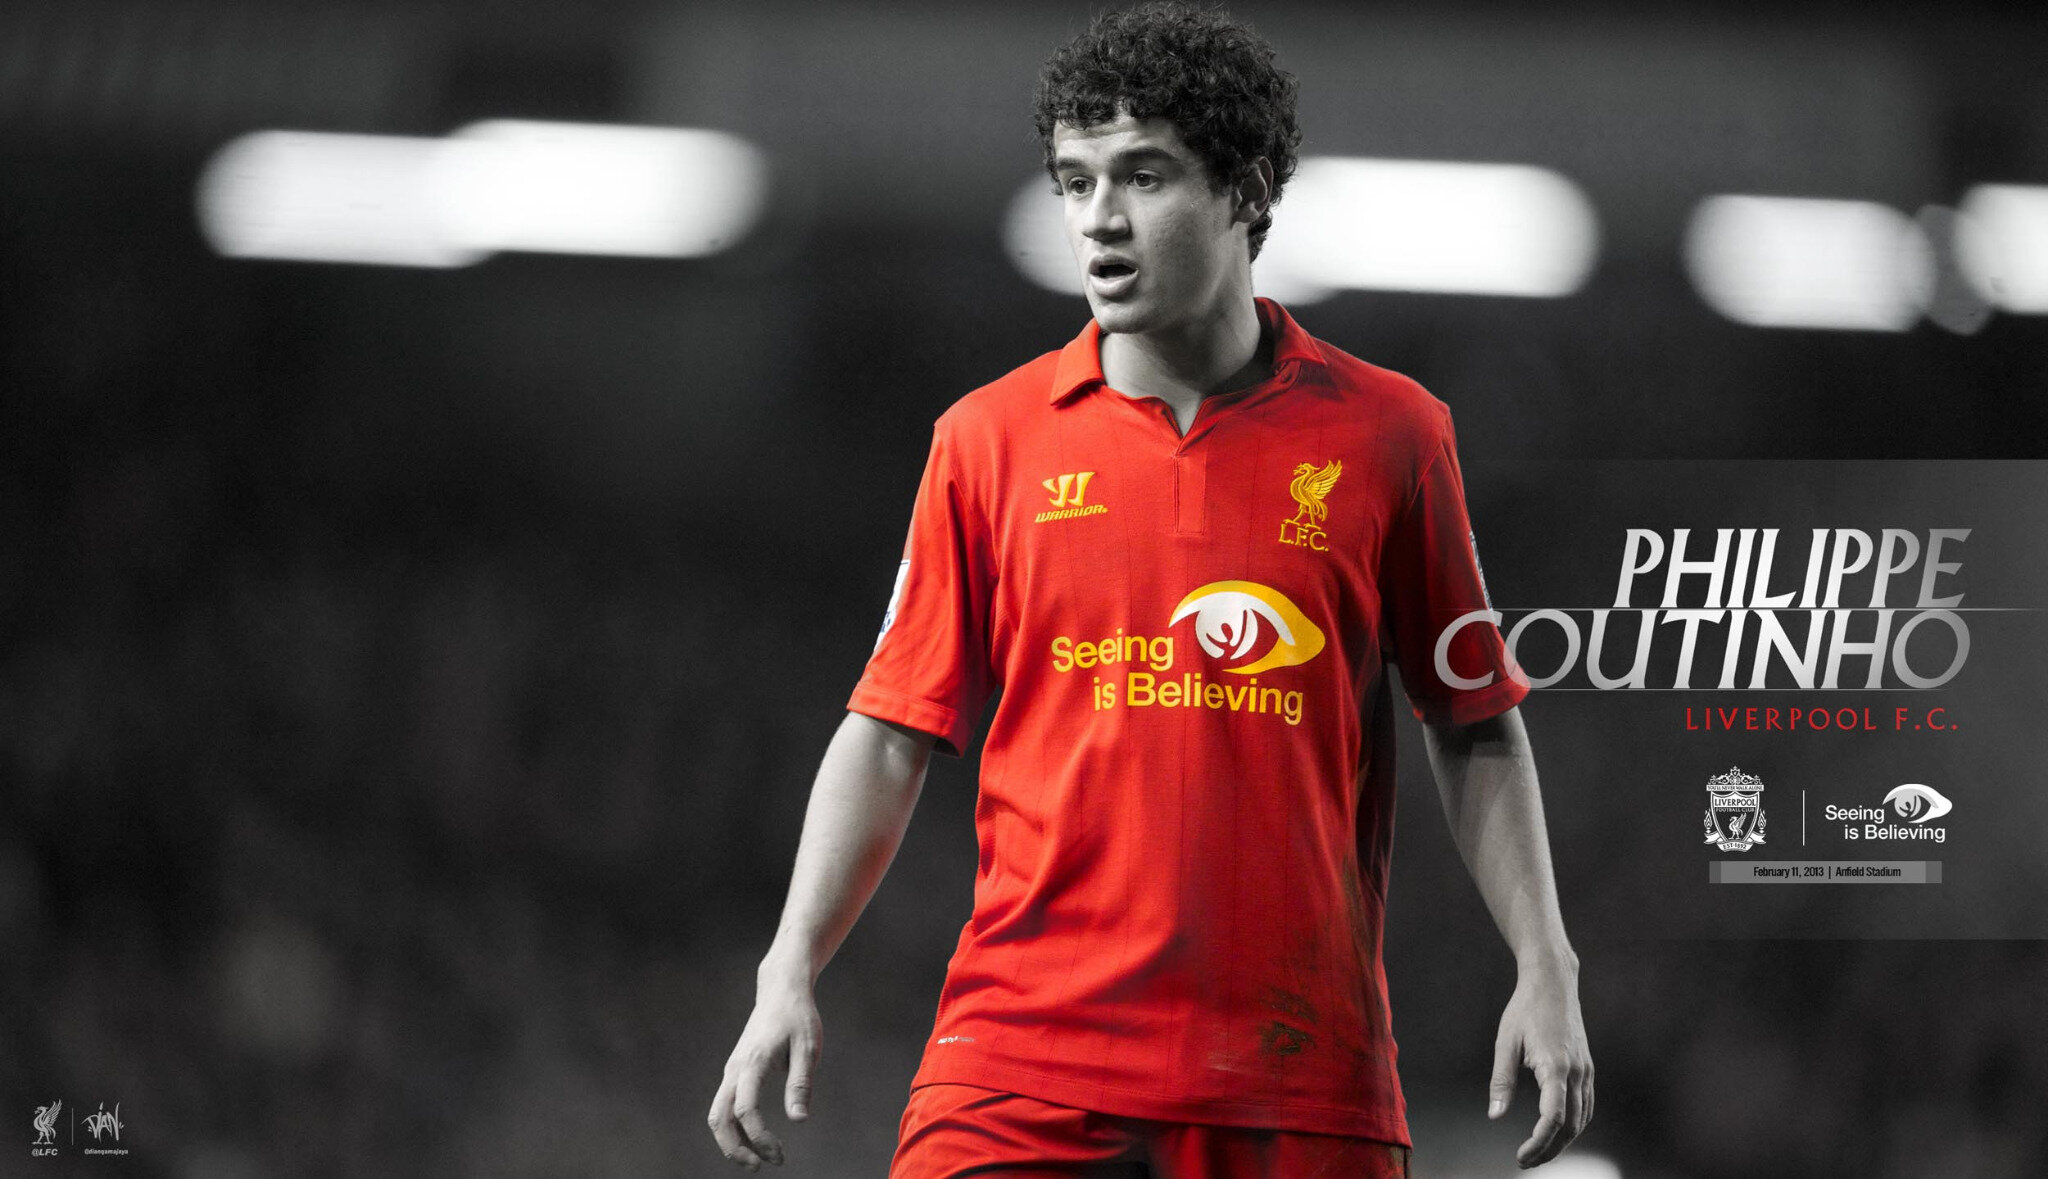 """Dian On Twitter: """"""""Philippe Coutinho"""""""" #Wallpaper @LFC"""